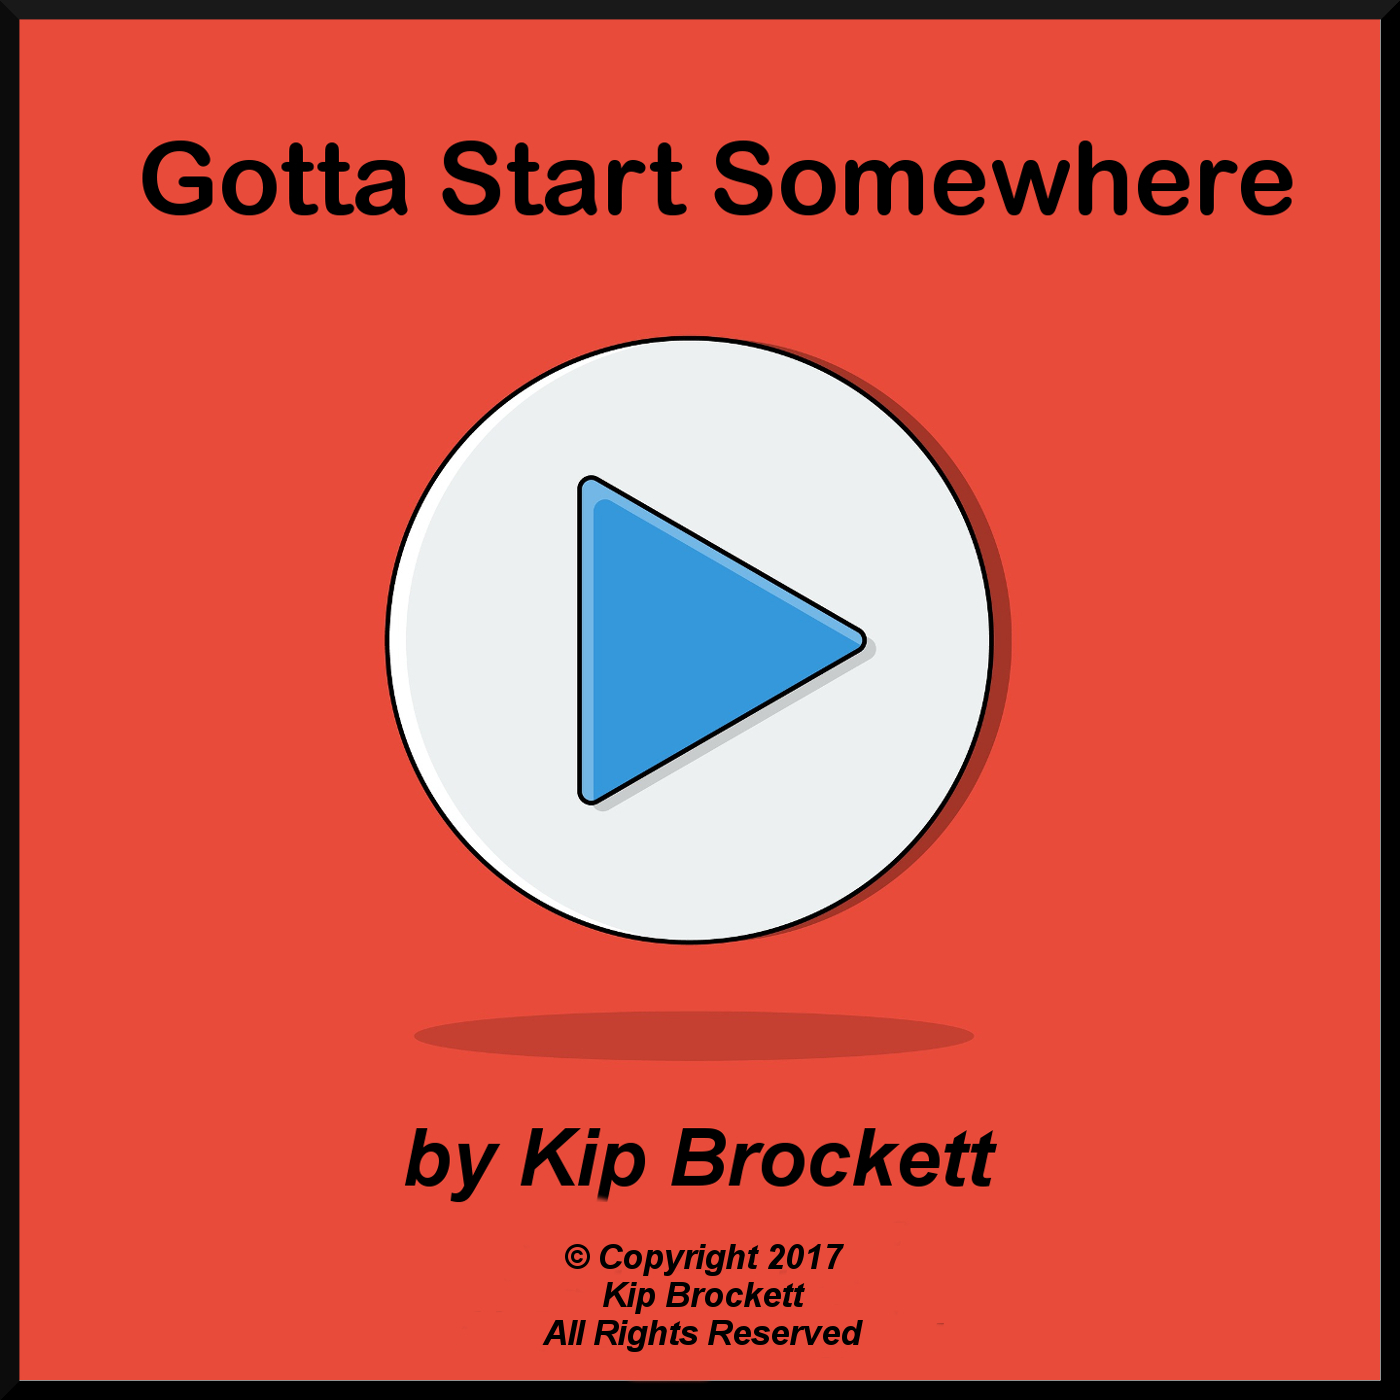 Gotta Start Somewhere download link